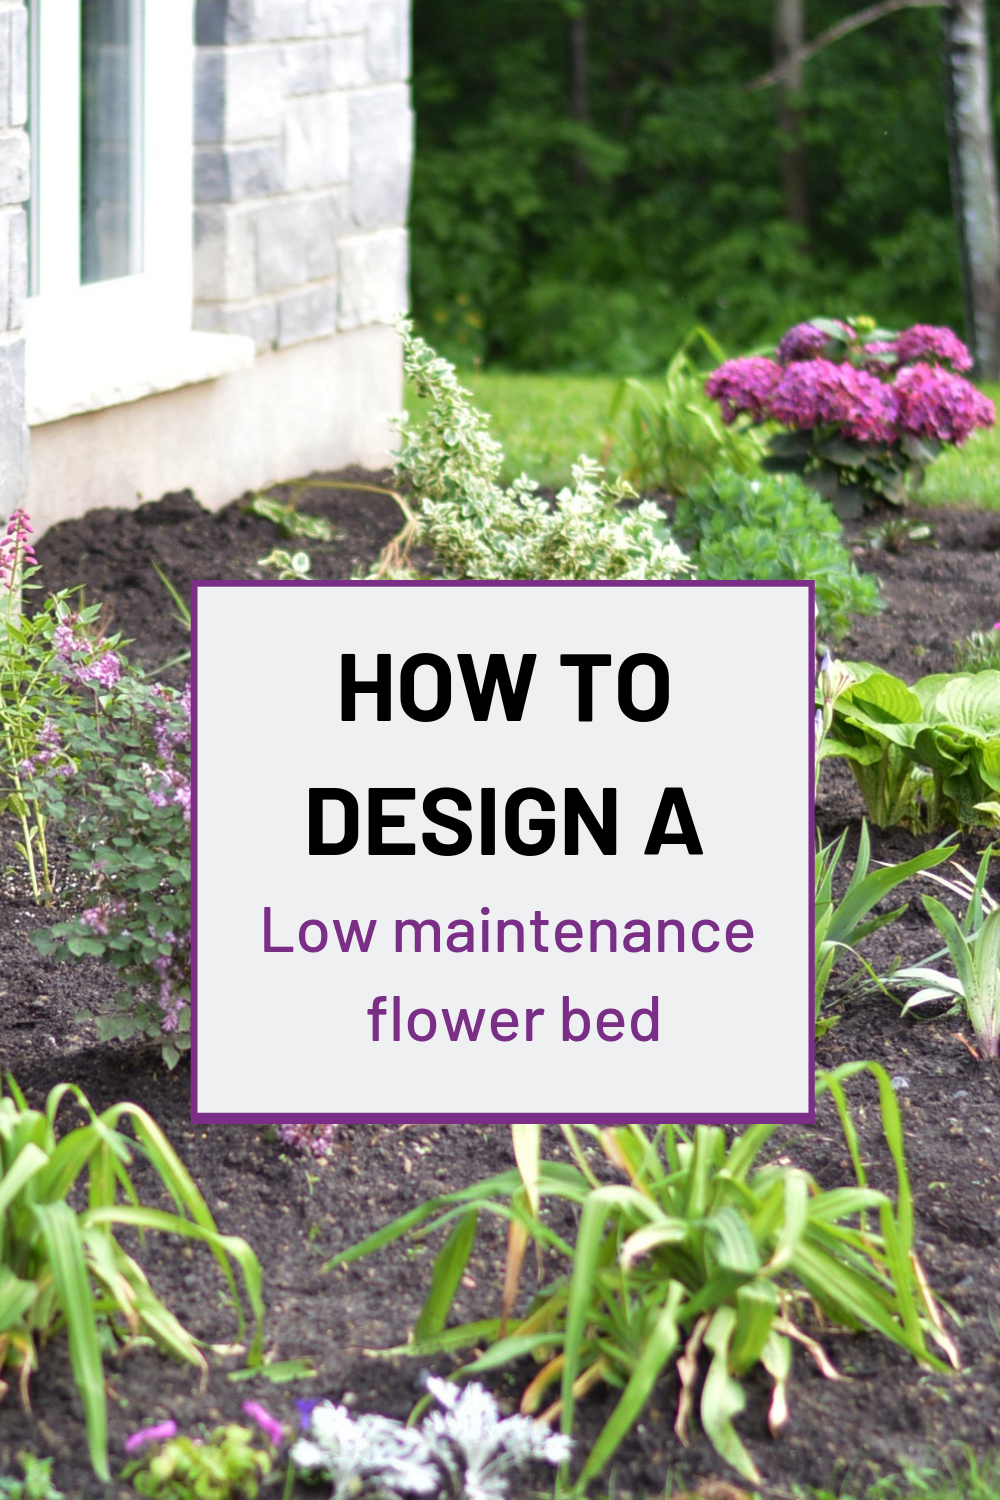 5 tips to design and plant a low maintenance flower bed